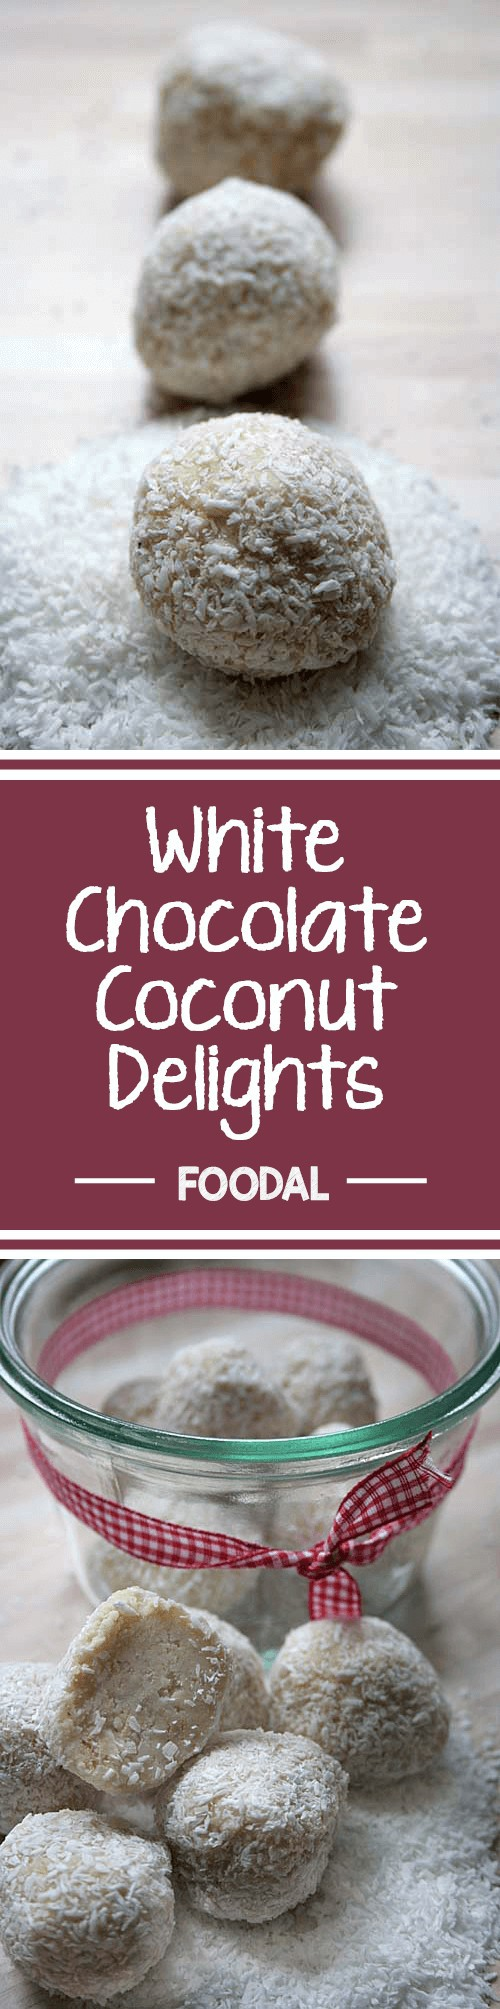 Fancy something a bit sweet every once in awhile? These white chocolate delights are easy to prepare, and they taste delicious. Plus, the coconut coating means these morsels are truly dressed to impress! Whether you want to treat yourself or you're having some friends over for coffee, serve these little goodies to create some sweet moments. Read more on Foodal. https://foodal.com/recipes/desserts/white-chocolate-coconut-delights/